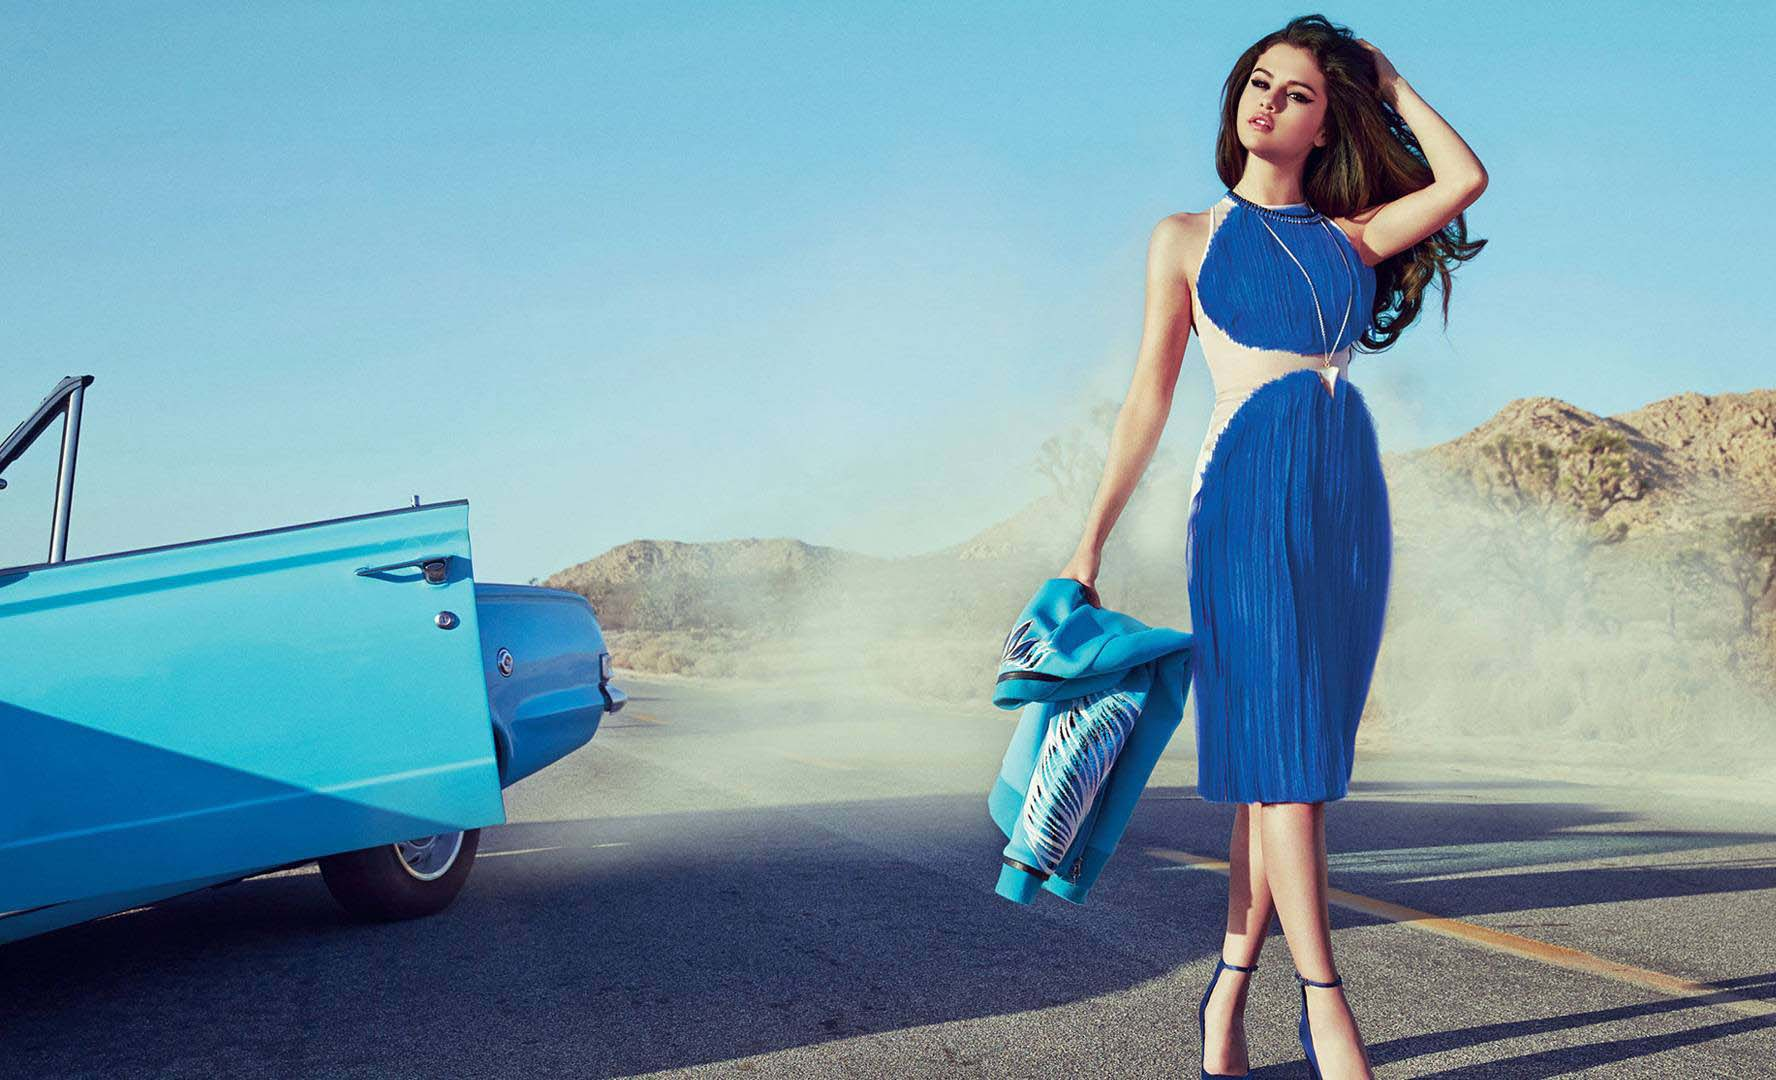 Beautiful Selena Gomez Blue Dress With Car Stylish Look Desktop Mobile Background Hd Free Images